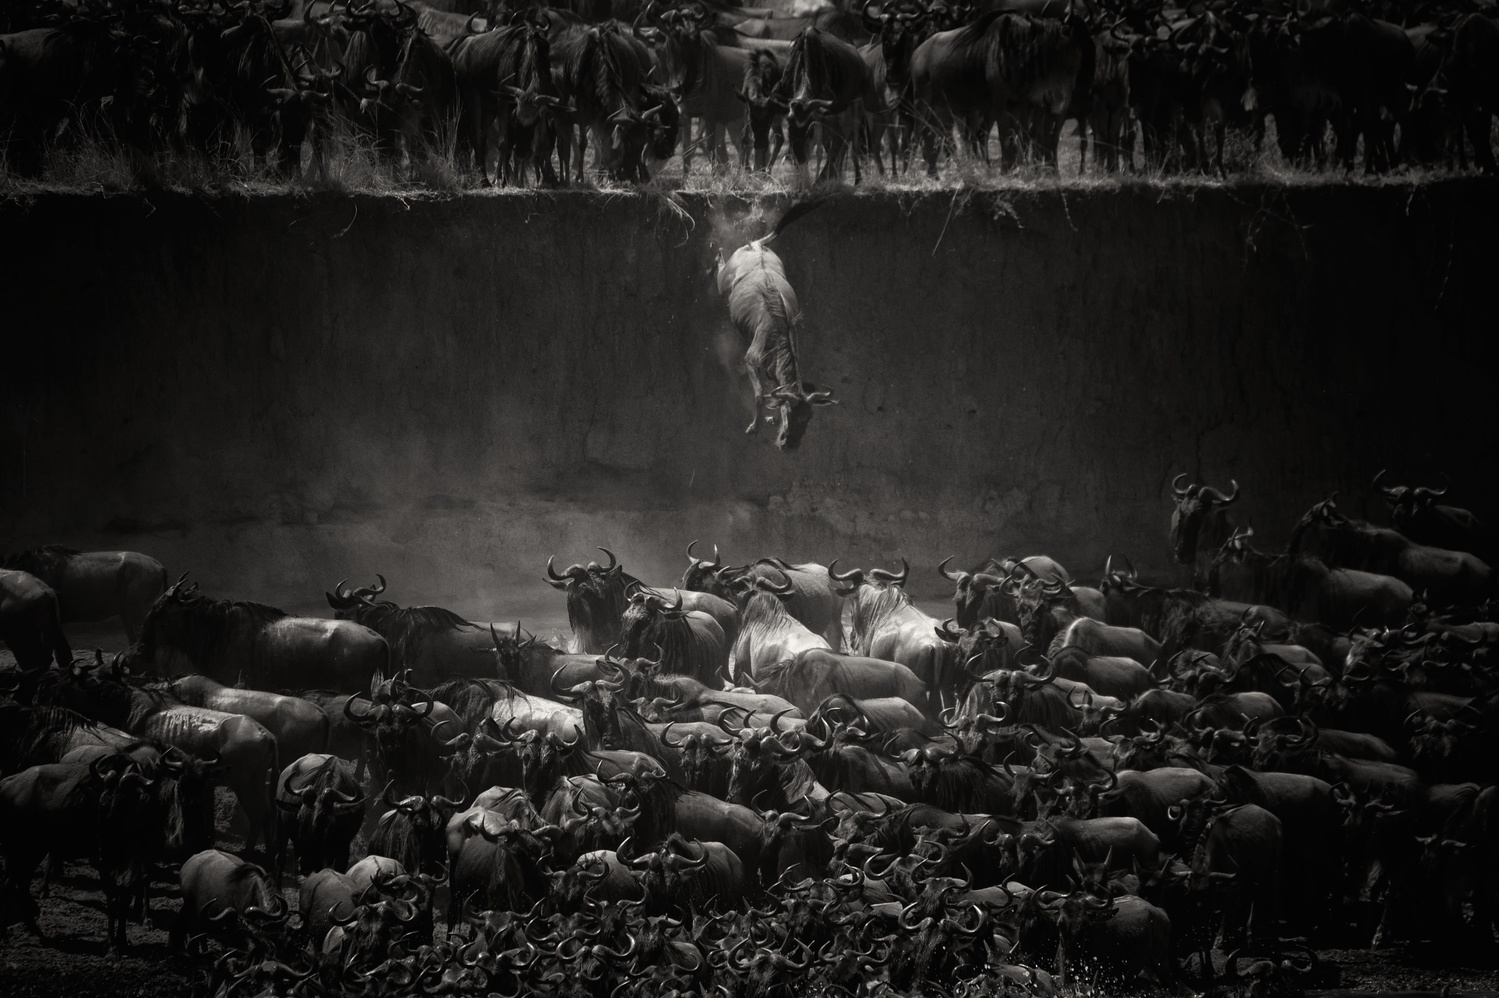 Nature Winner Nicole Cambre, Brussels, Belgium The Great Migration